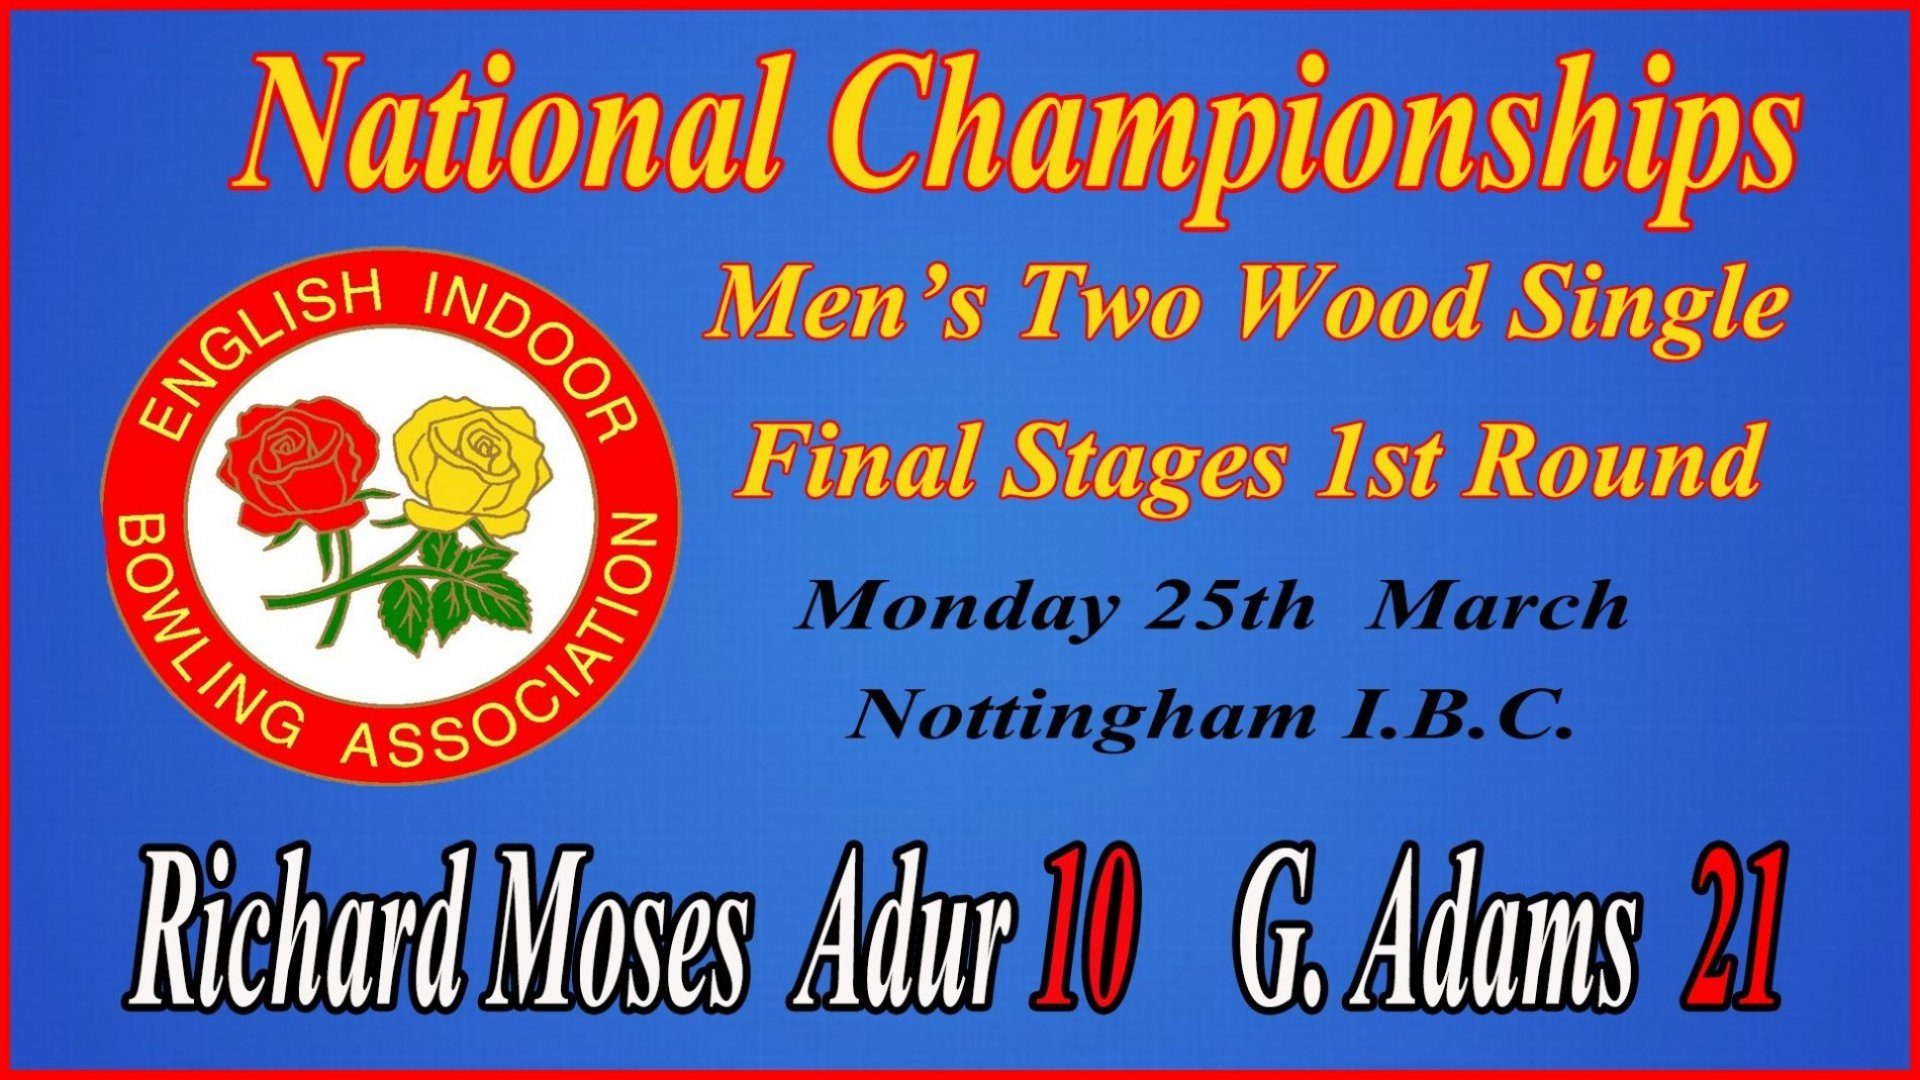 Men's 2 wood singles Championship Final-Result at Nottingham - Monday 25.3.19